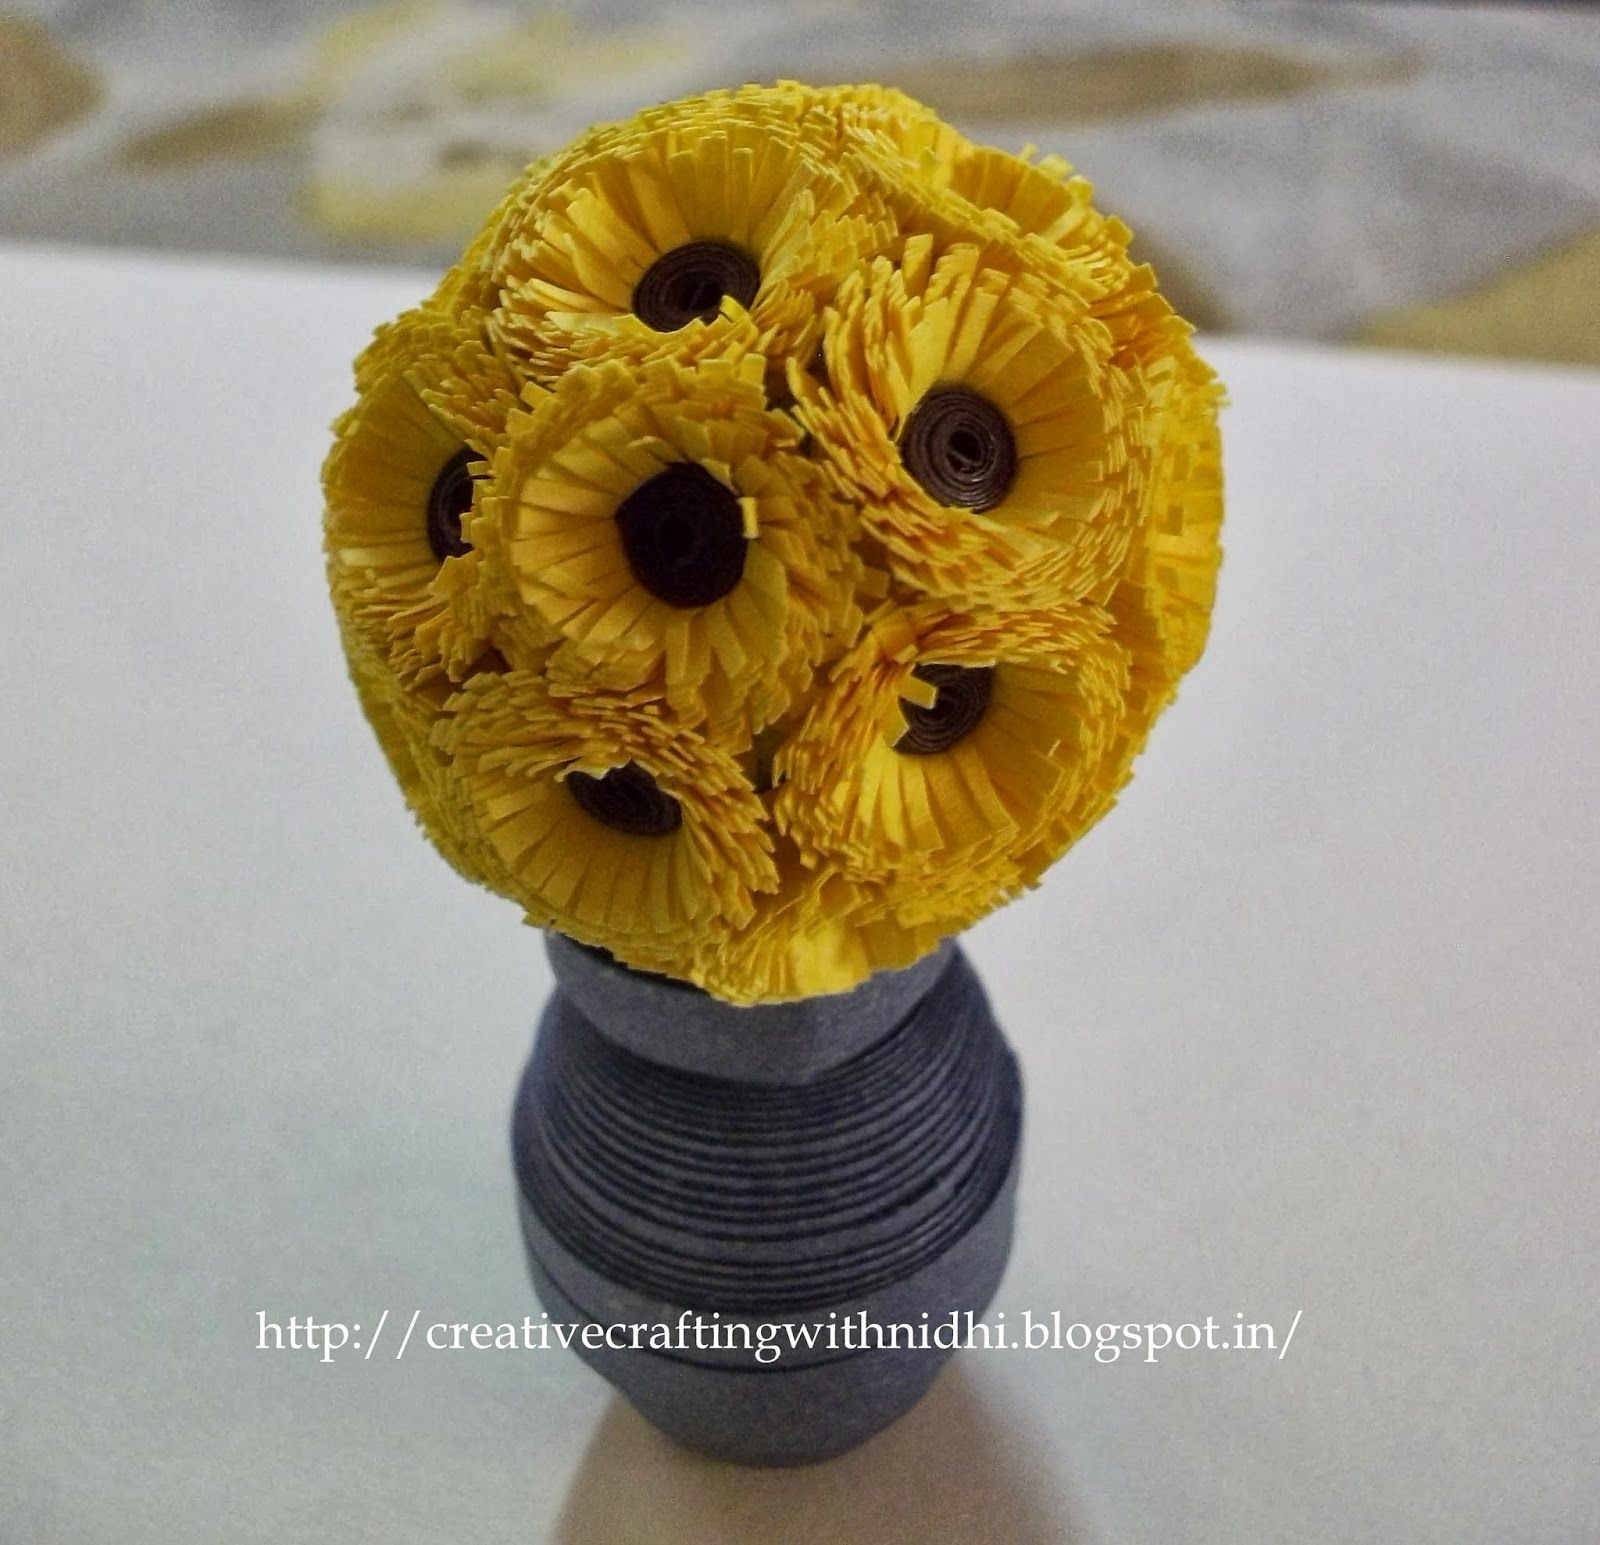 handmade vase ideas of flower decoration ideas part 423 for permalink to 11 lovely handmade paper quilling flower vase